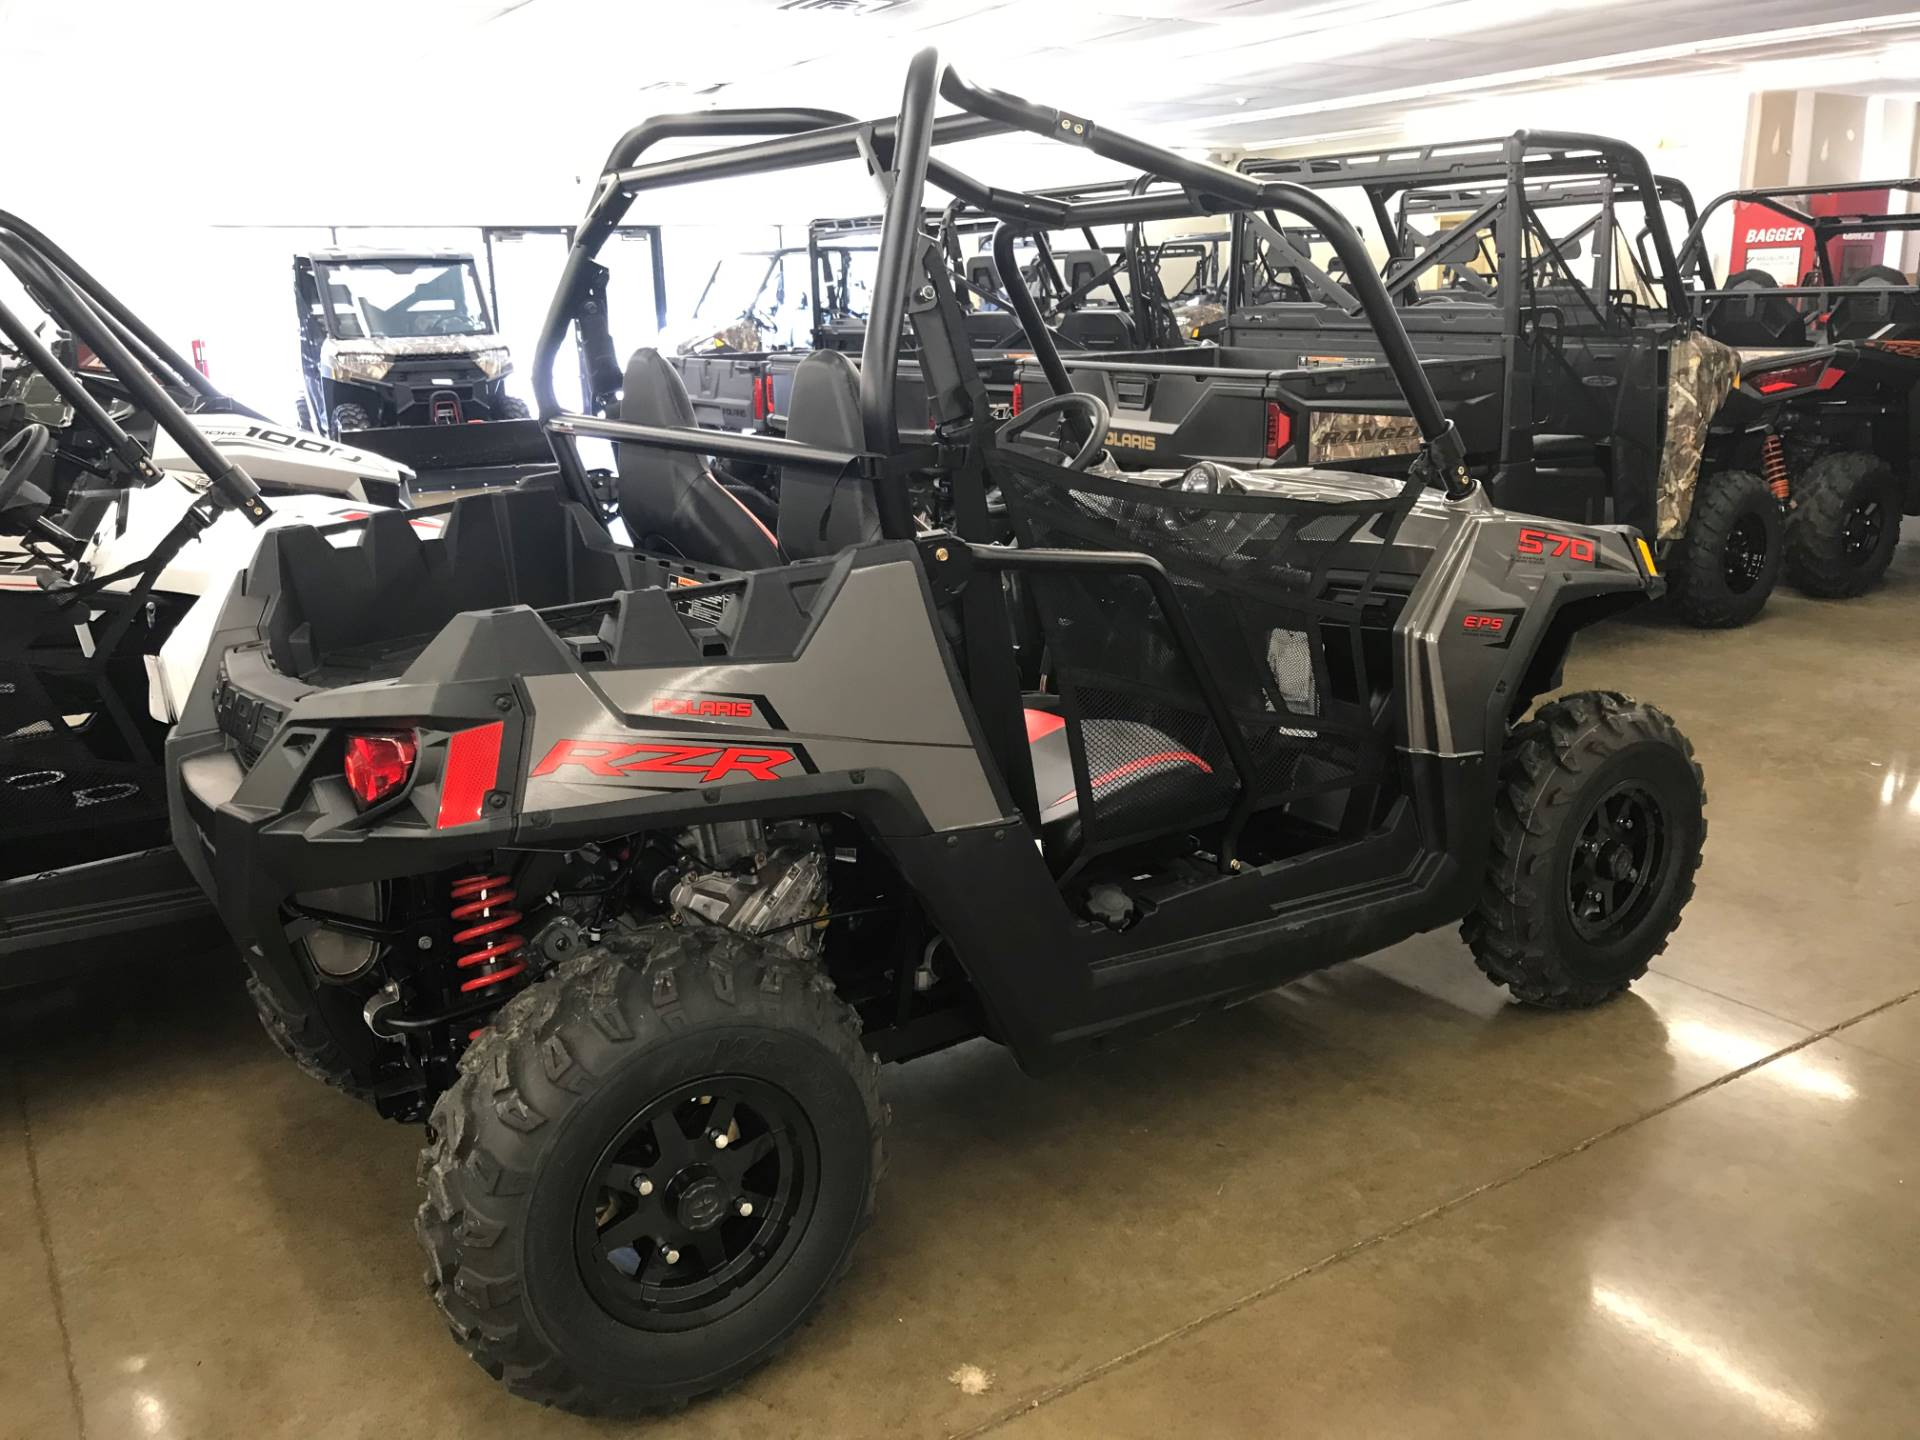 2019 Polaris RZR 570 EPS in Beaver Falls, Pennsylvania - Photo 4